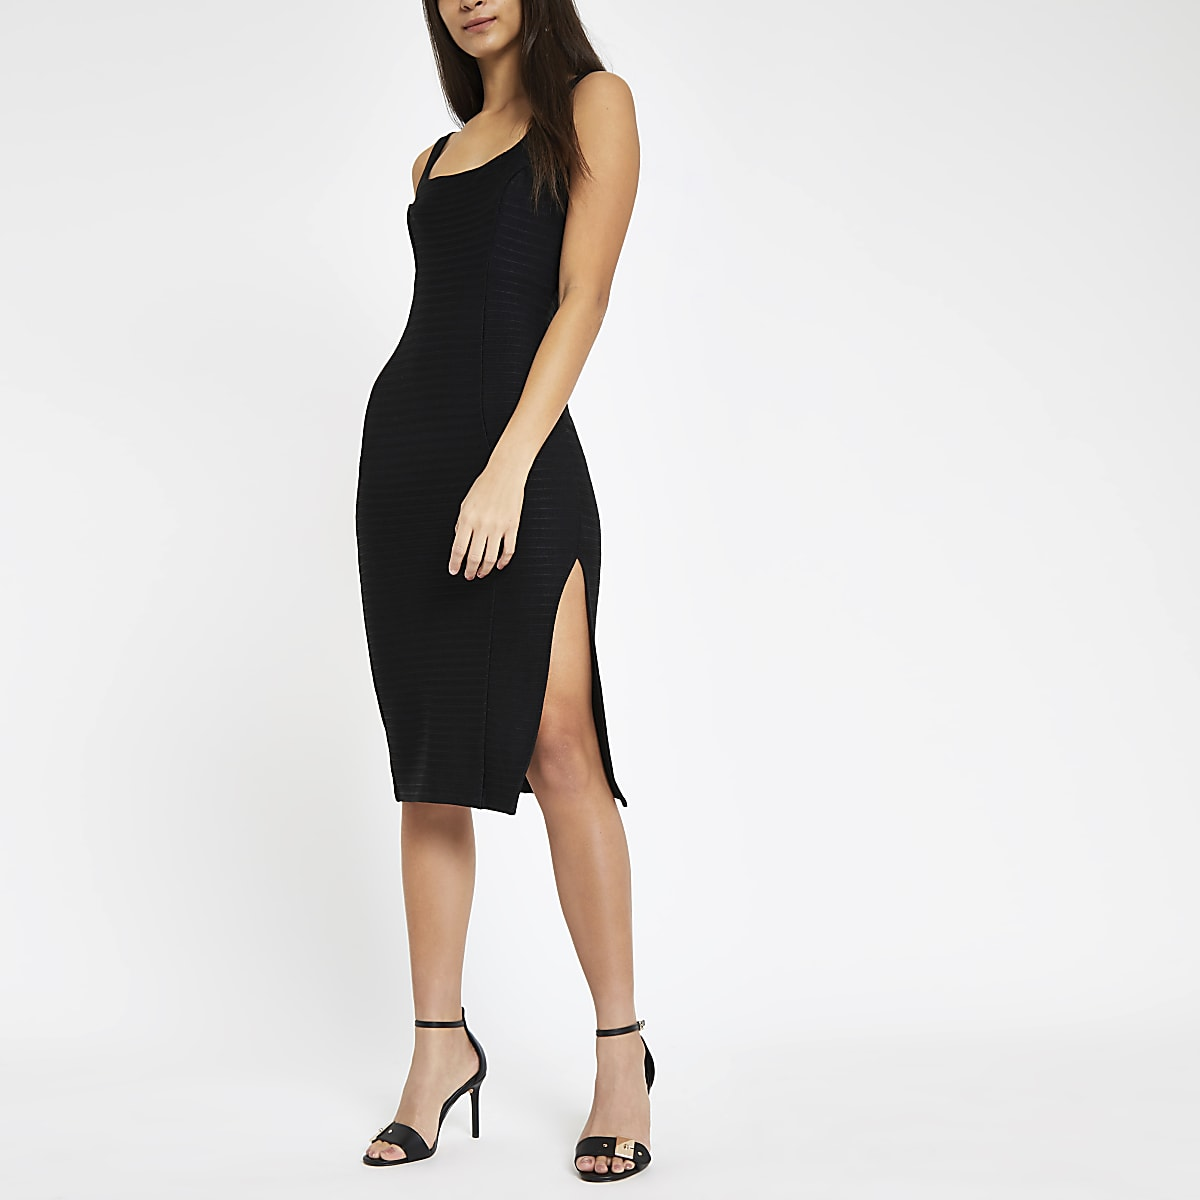 ef0ebba3e48 Black square neck bodycon midi dress - Bodycon Dresses - Dresses - women